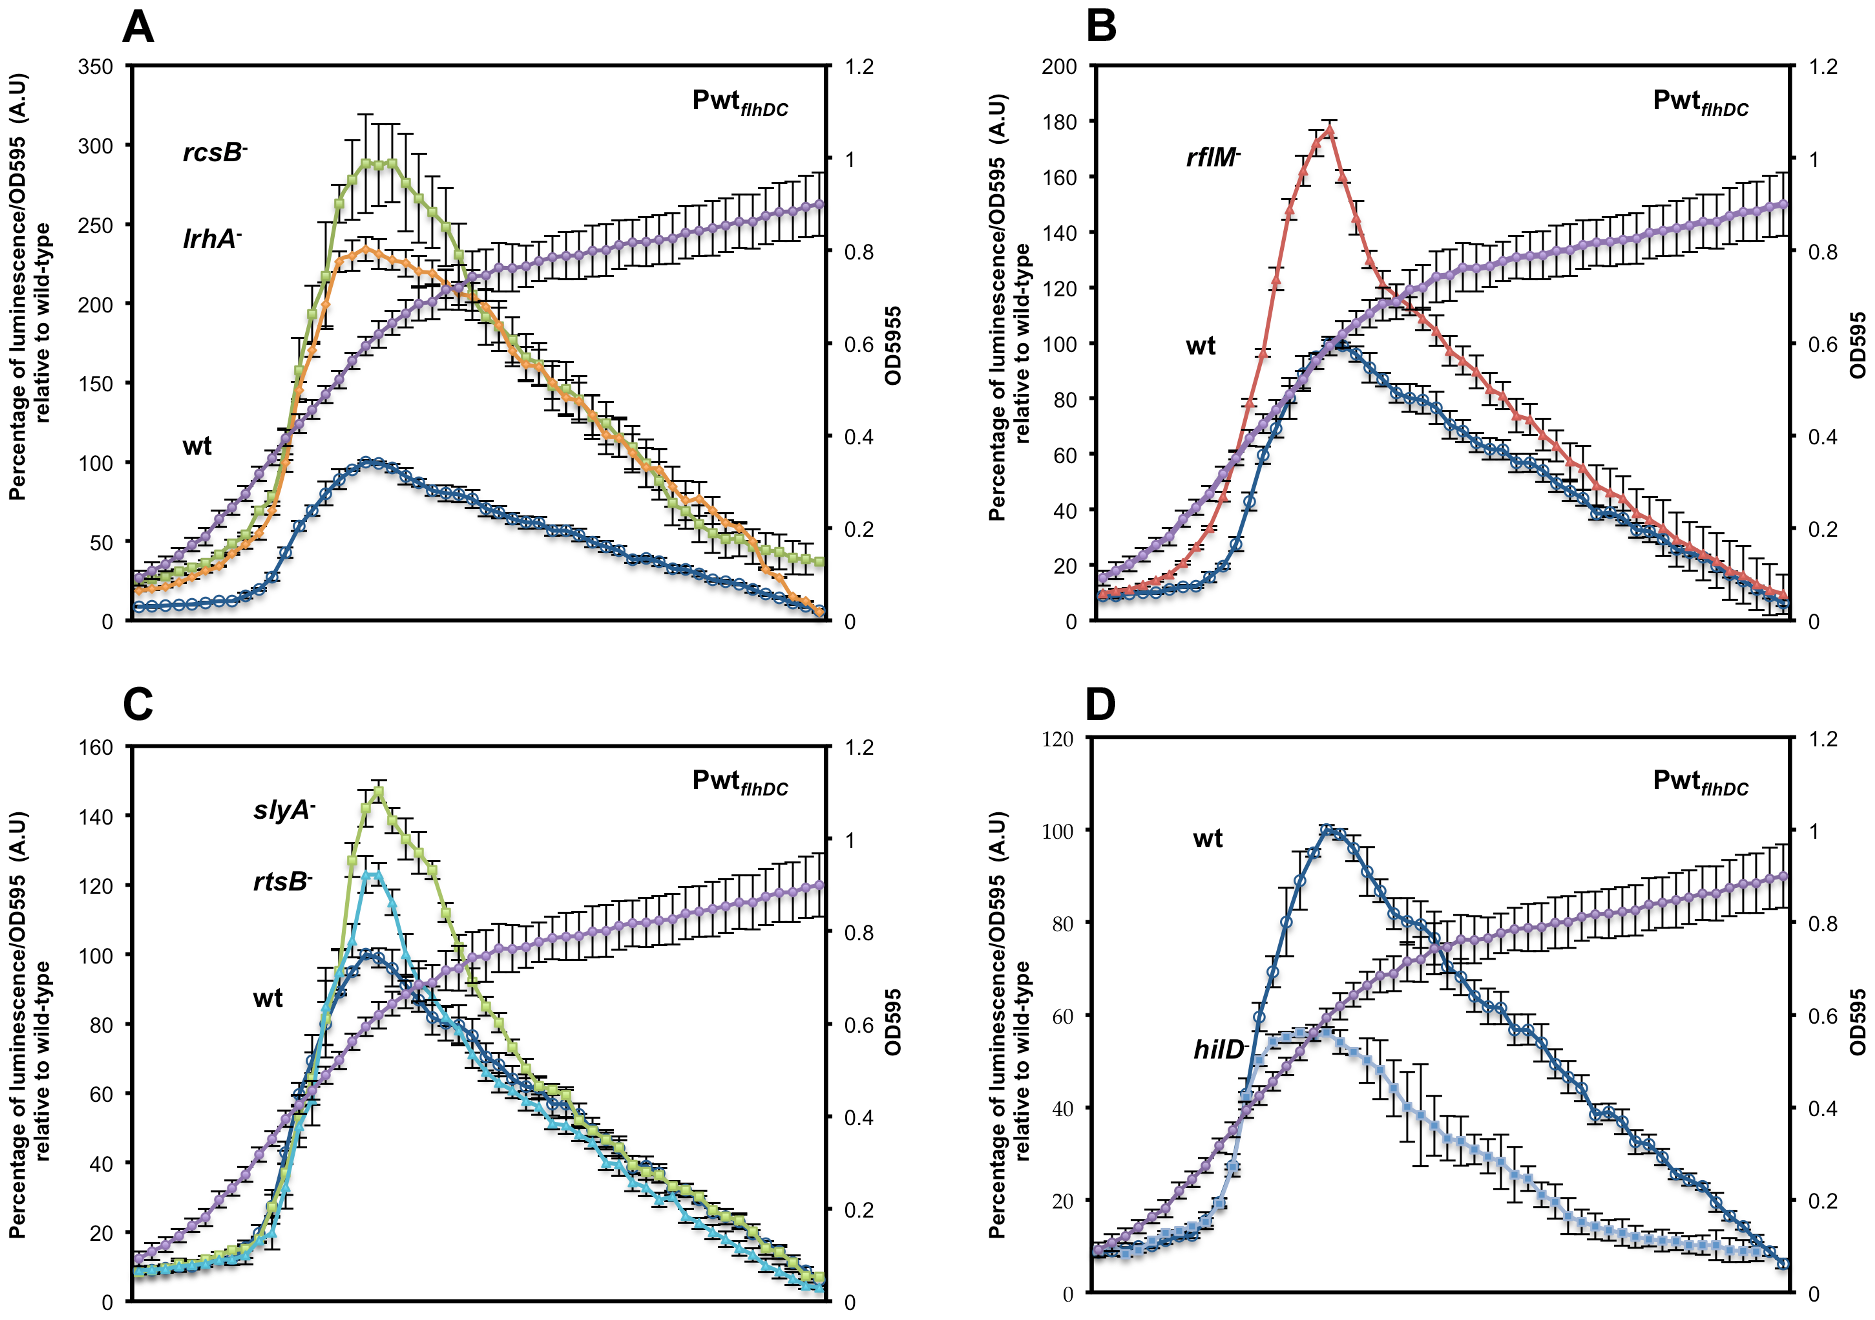 Precise transcriptional regulation of the <i>flhDC</i> operon is growth phase dependent.